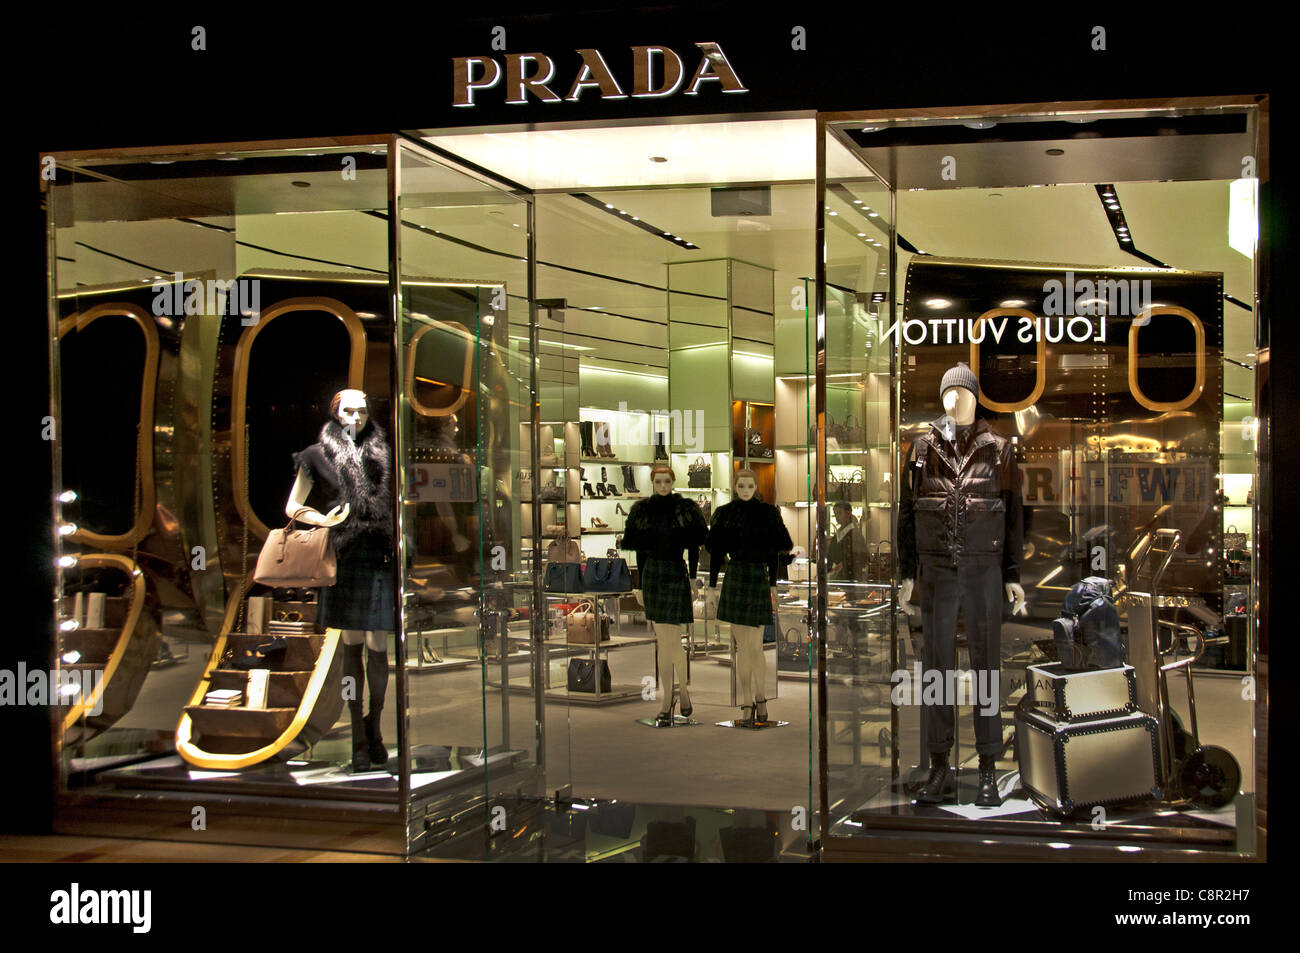 prada italy italian fashion shop display window united states of stock photo 39844931 alamy. Black Bedroom Furniture Sets. Home Design Ideas